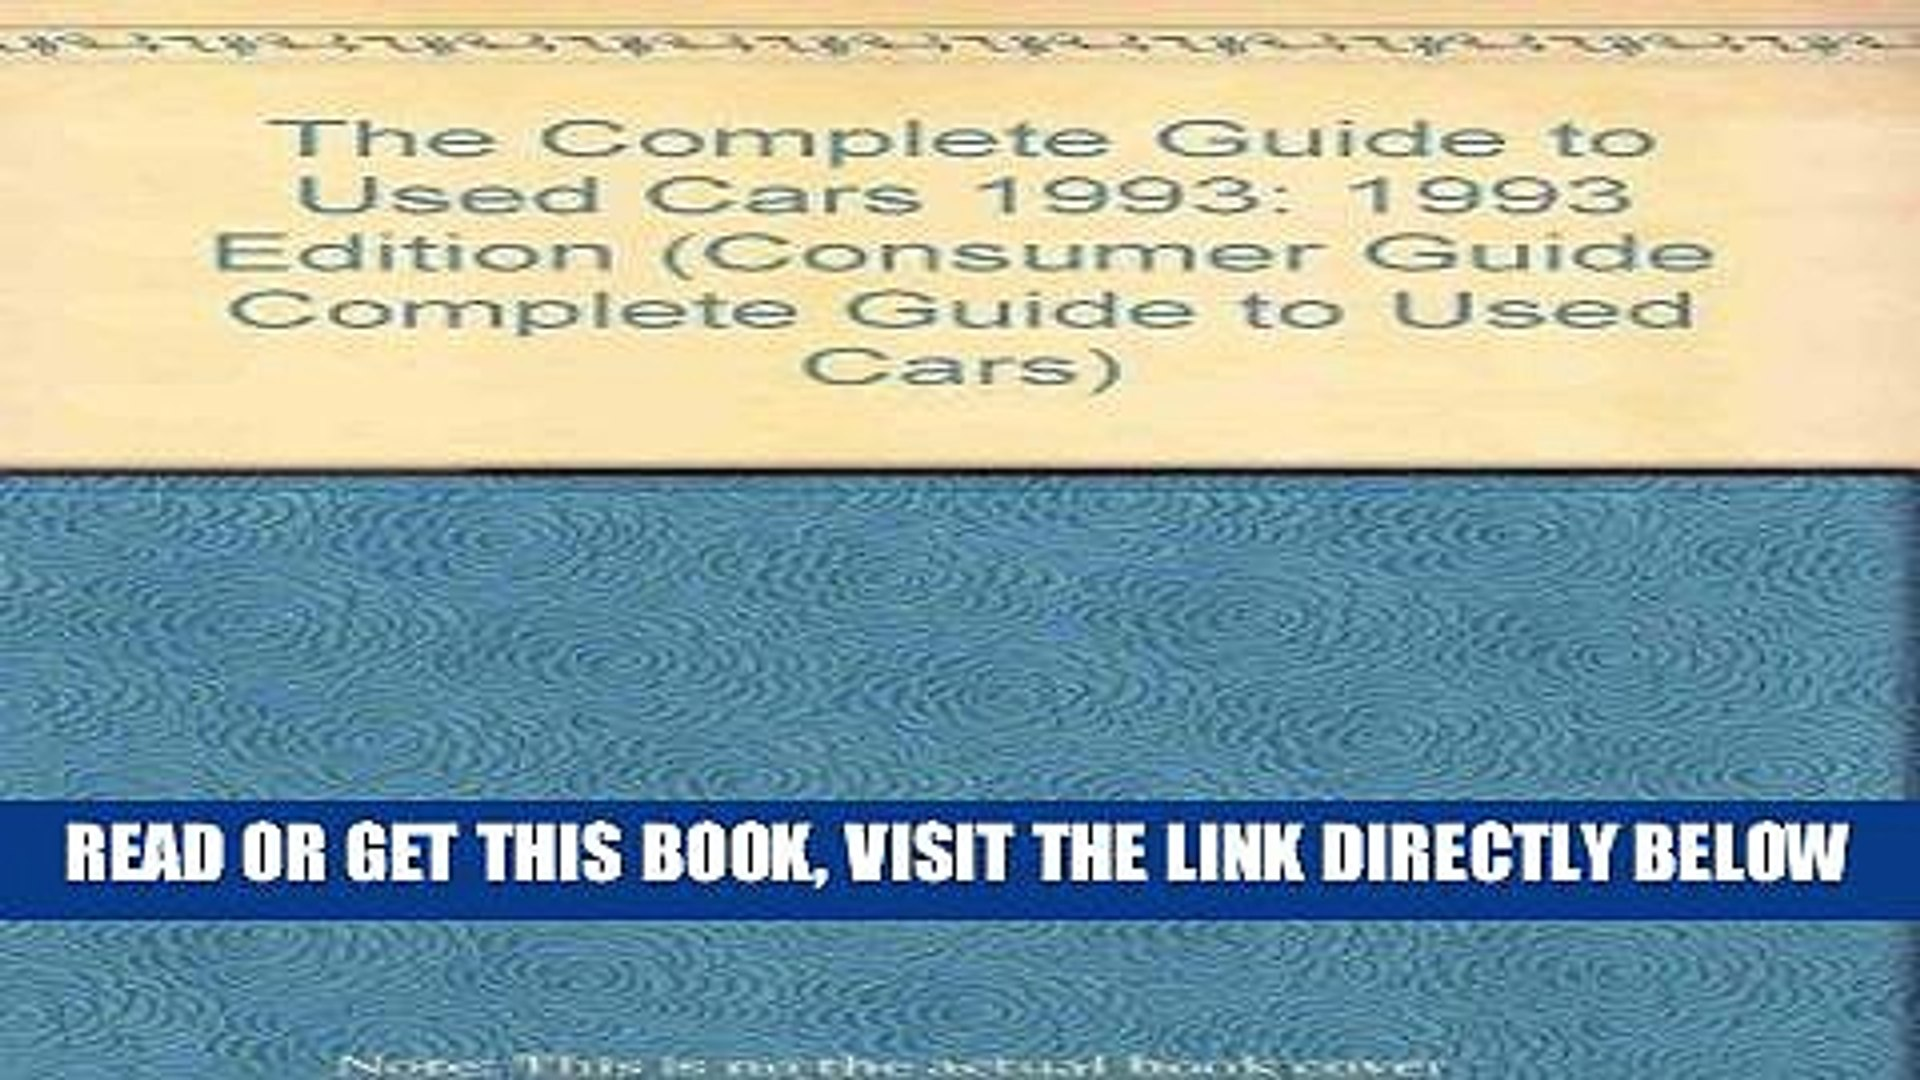 [READ] EBOOK The Complete Guide to Used Cars 1993: 1993 Edition (Consumer Guide Complete Guide to